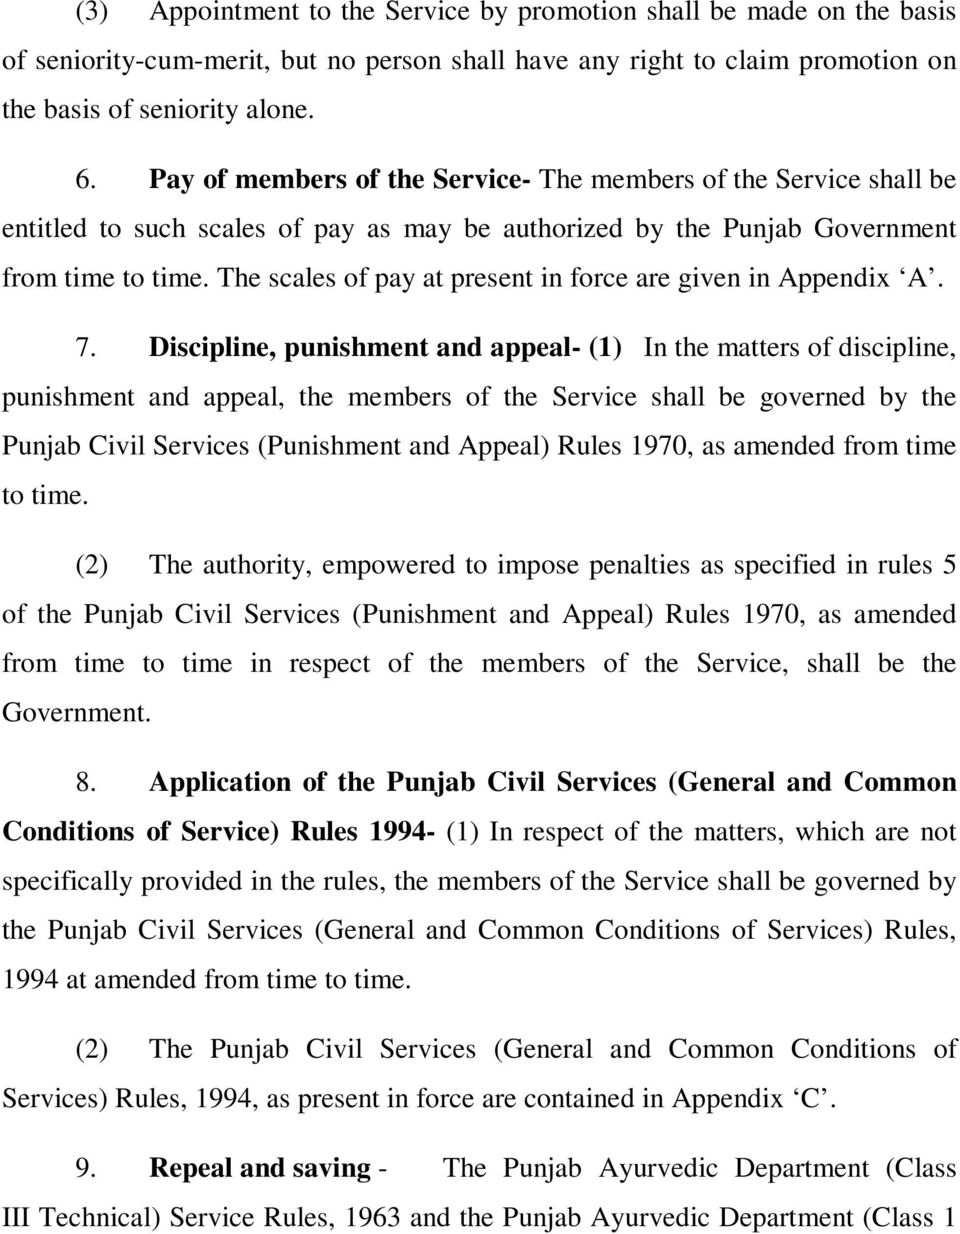 7th Pay Commission Punjab Govt Notification